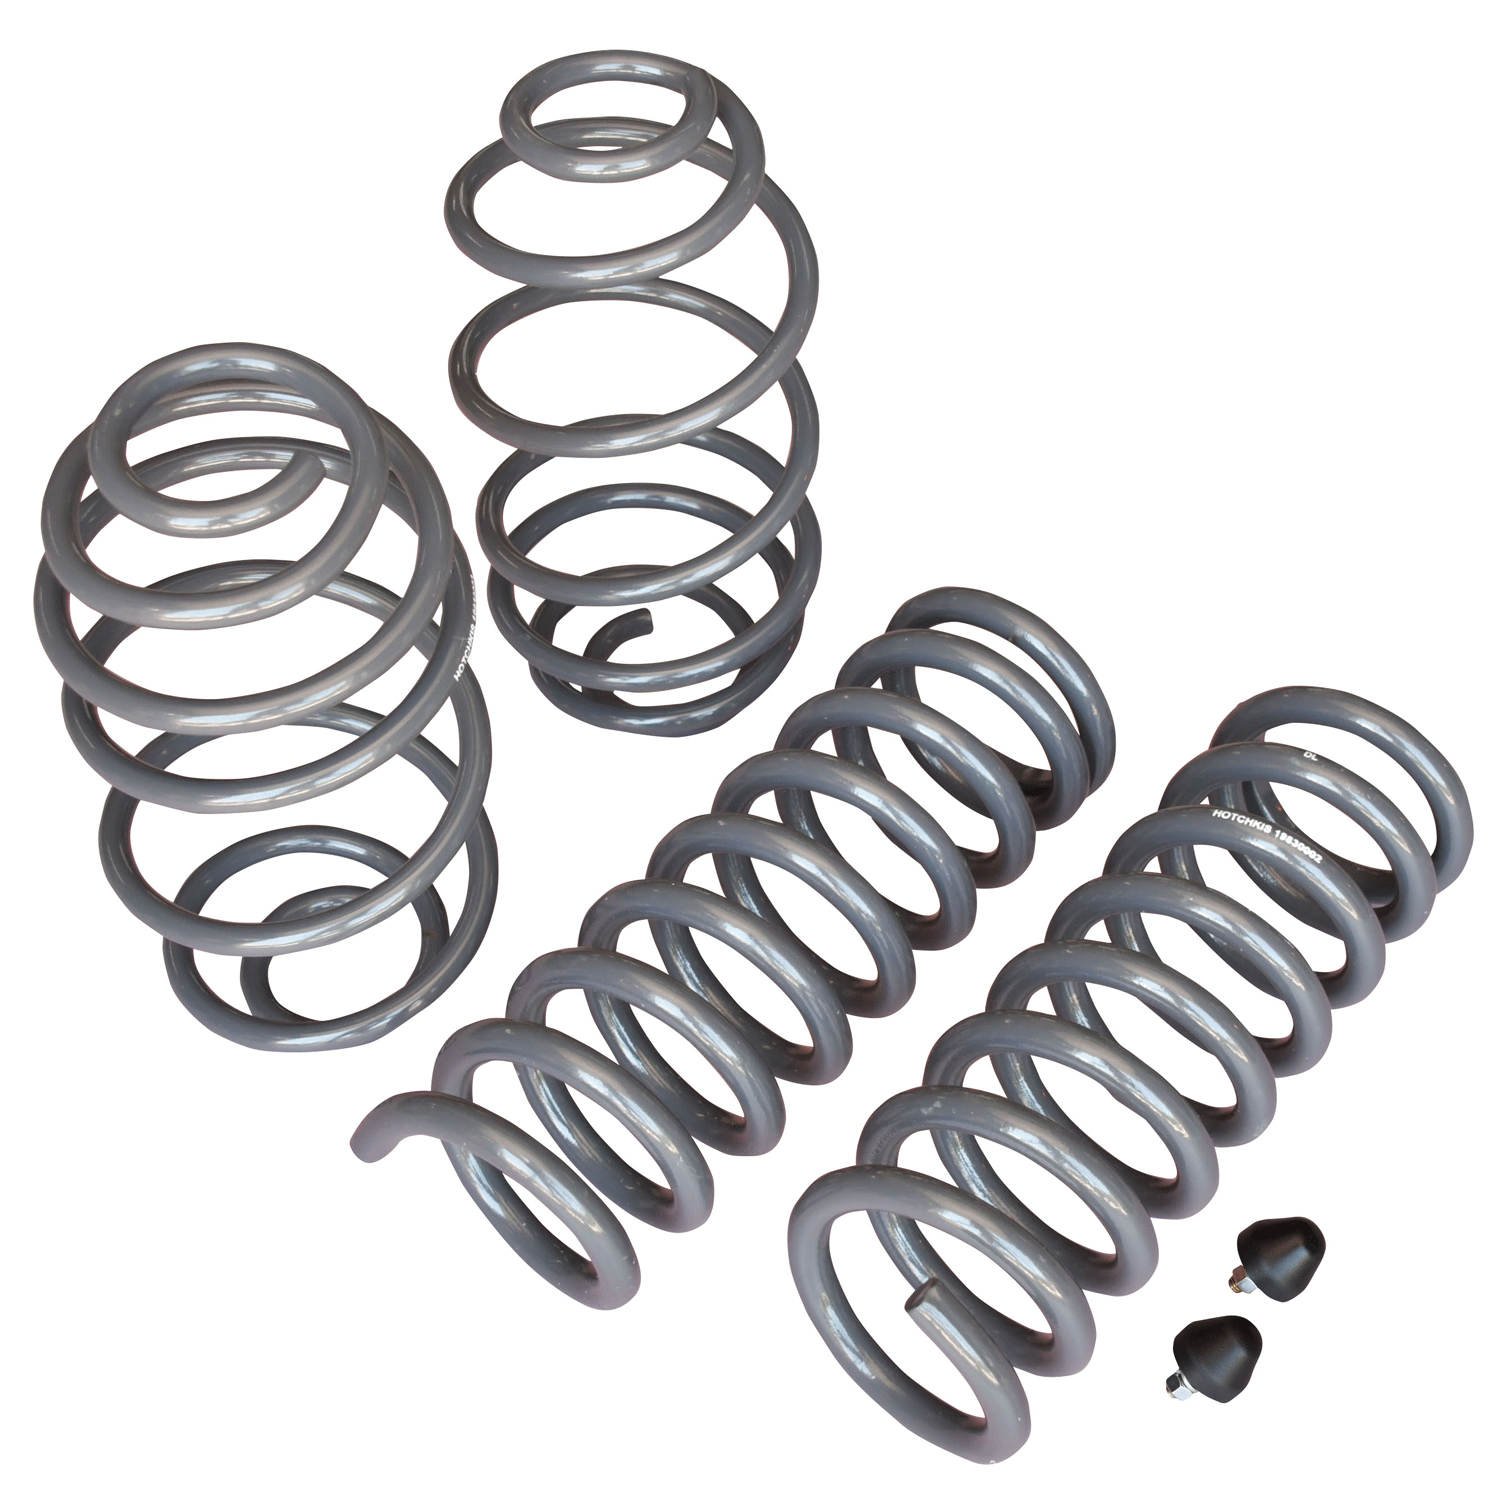 1967-1972 GM A-Body Lowering Coil Springs Set (4) 1 in. Drop Big Block